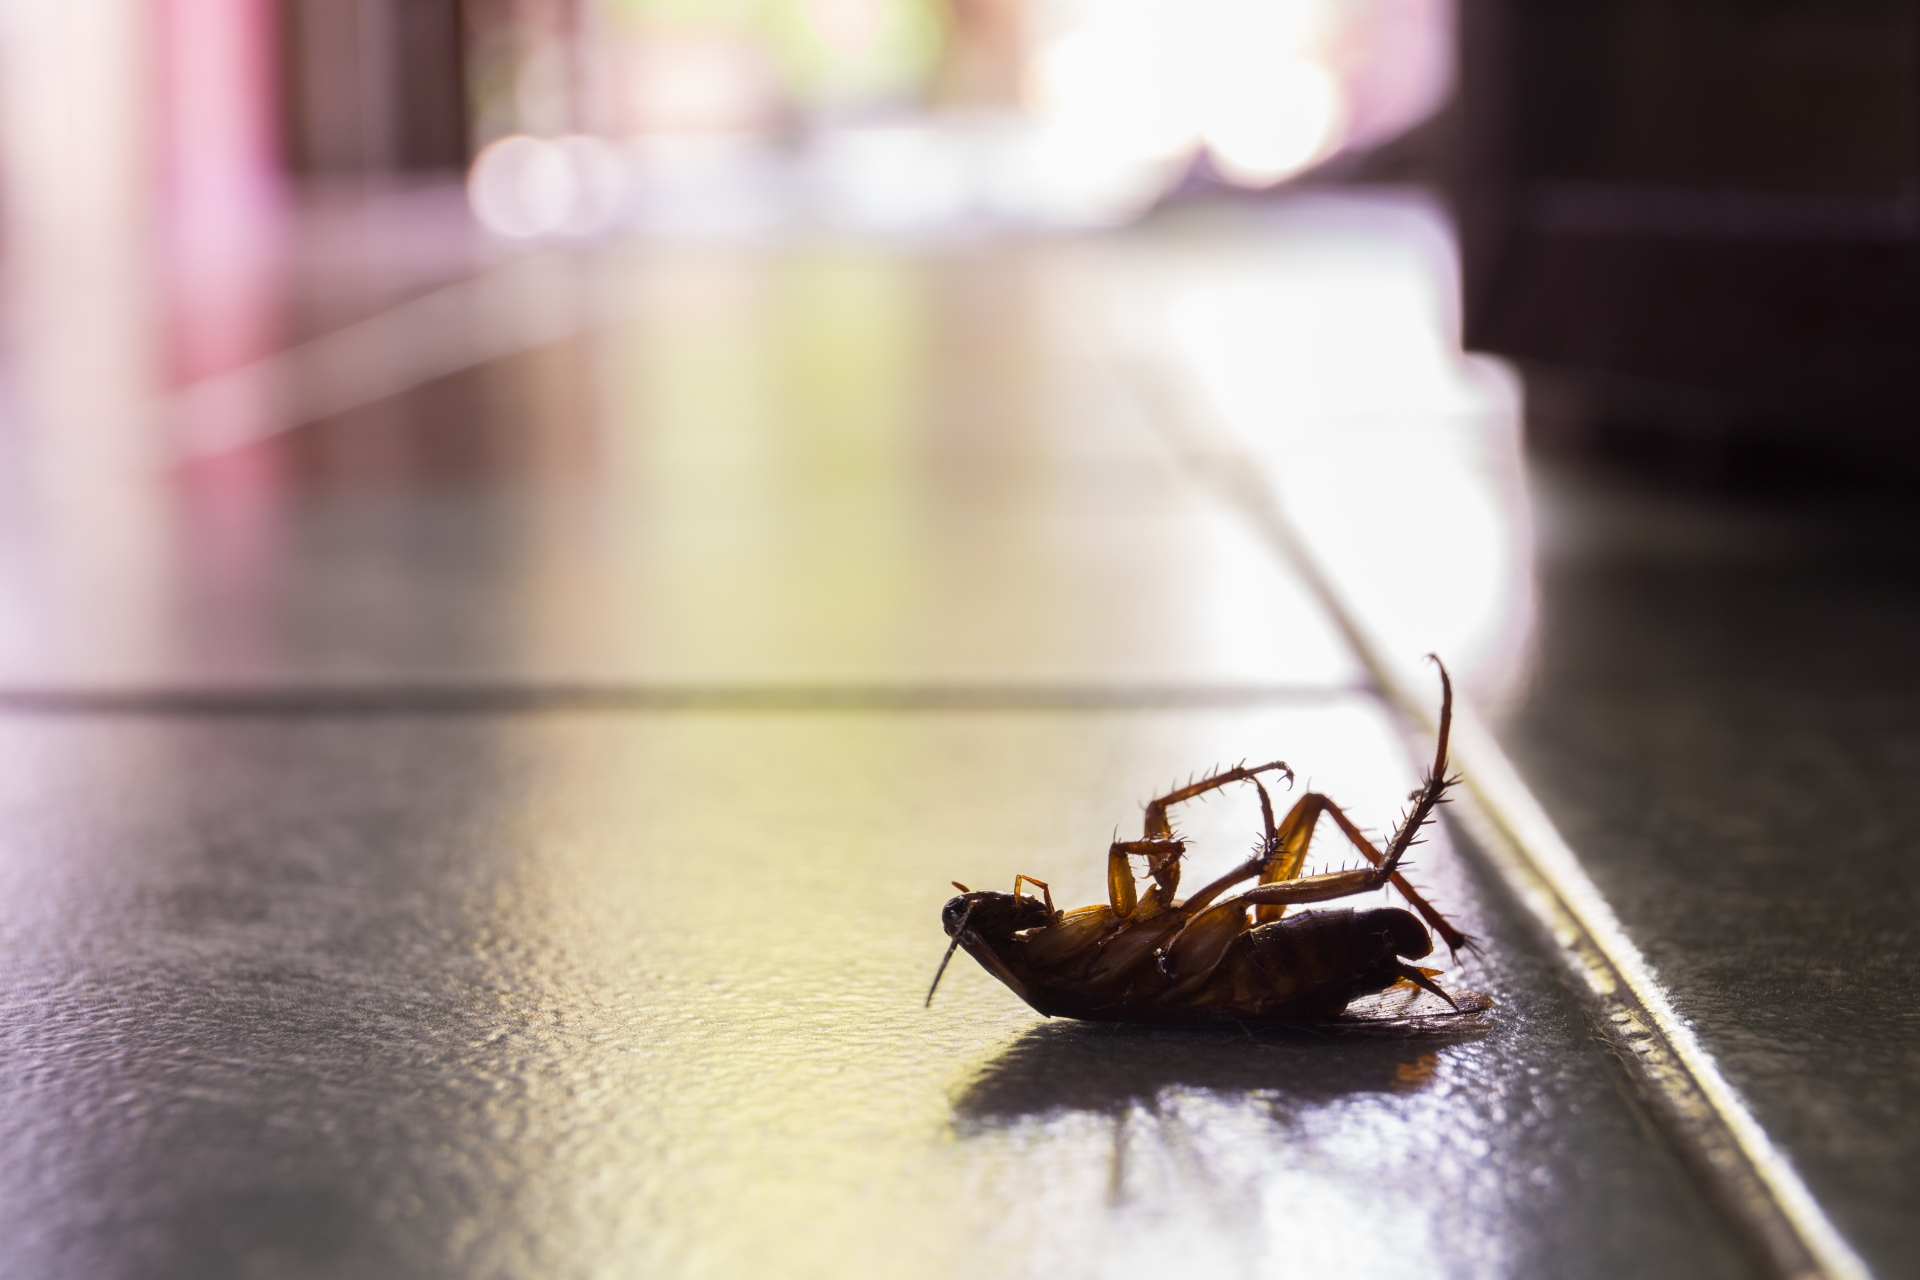 Cockroach Control, Pest Control in Chiswick, W4. Call Now 020 8166 9746